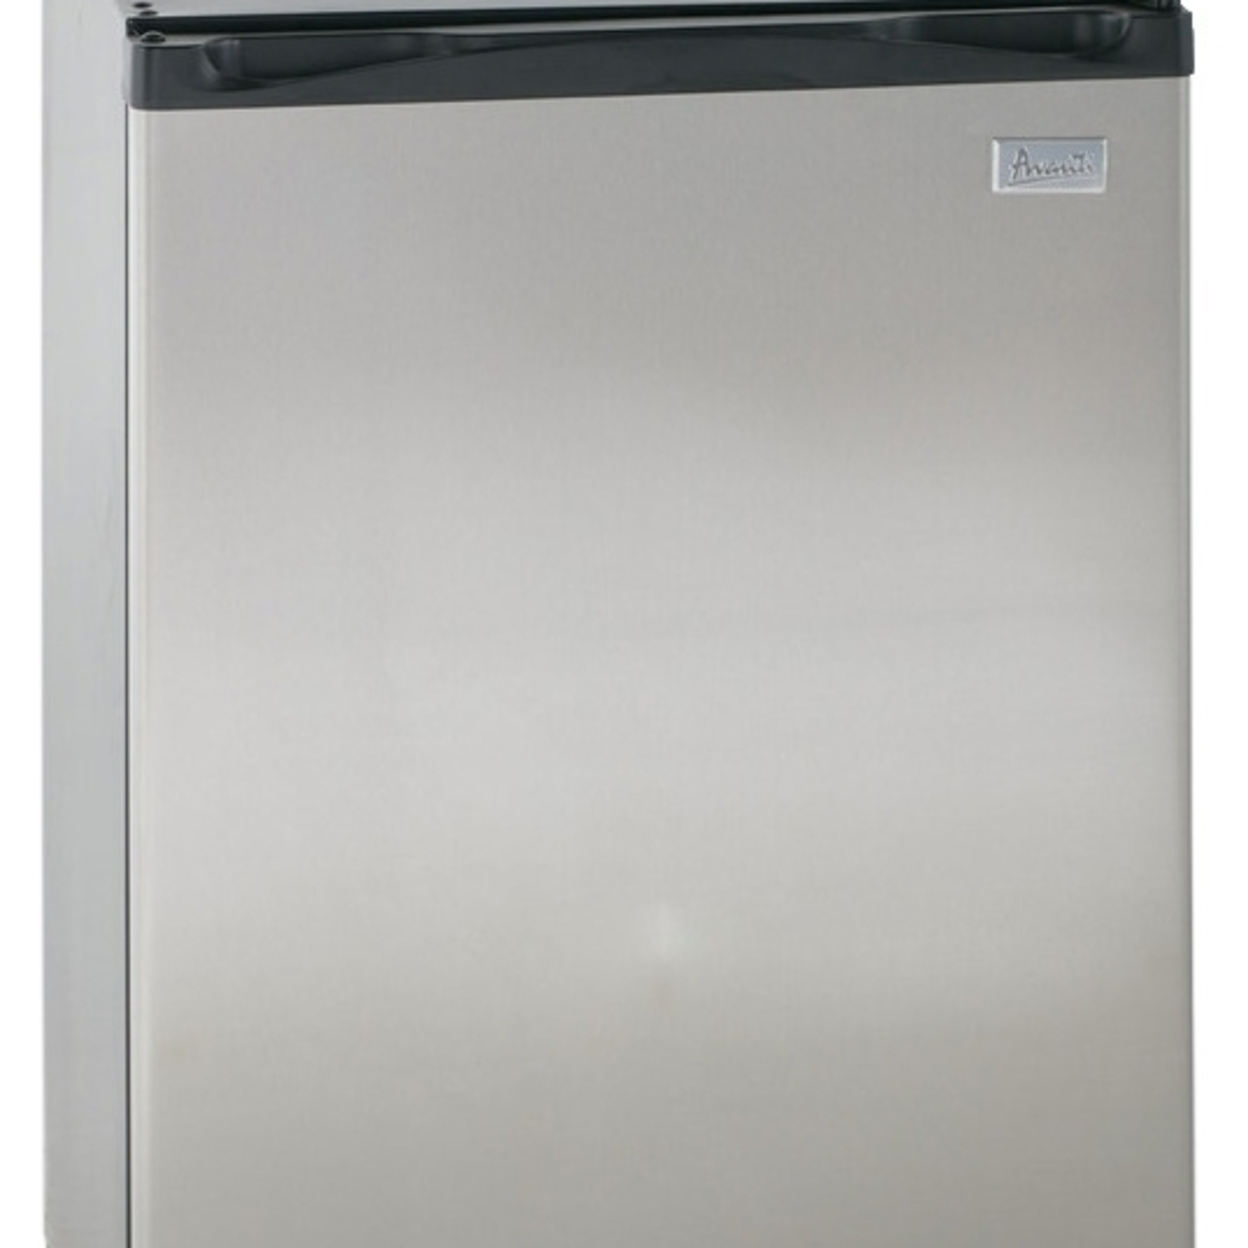 Avanti Ar52T3Sb 5.2 cu. ft. Stainless Steel Compact Refrigerator